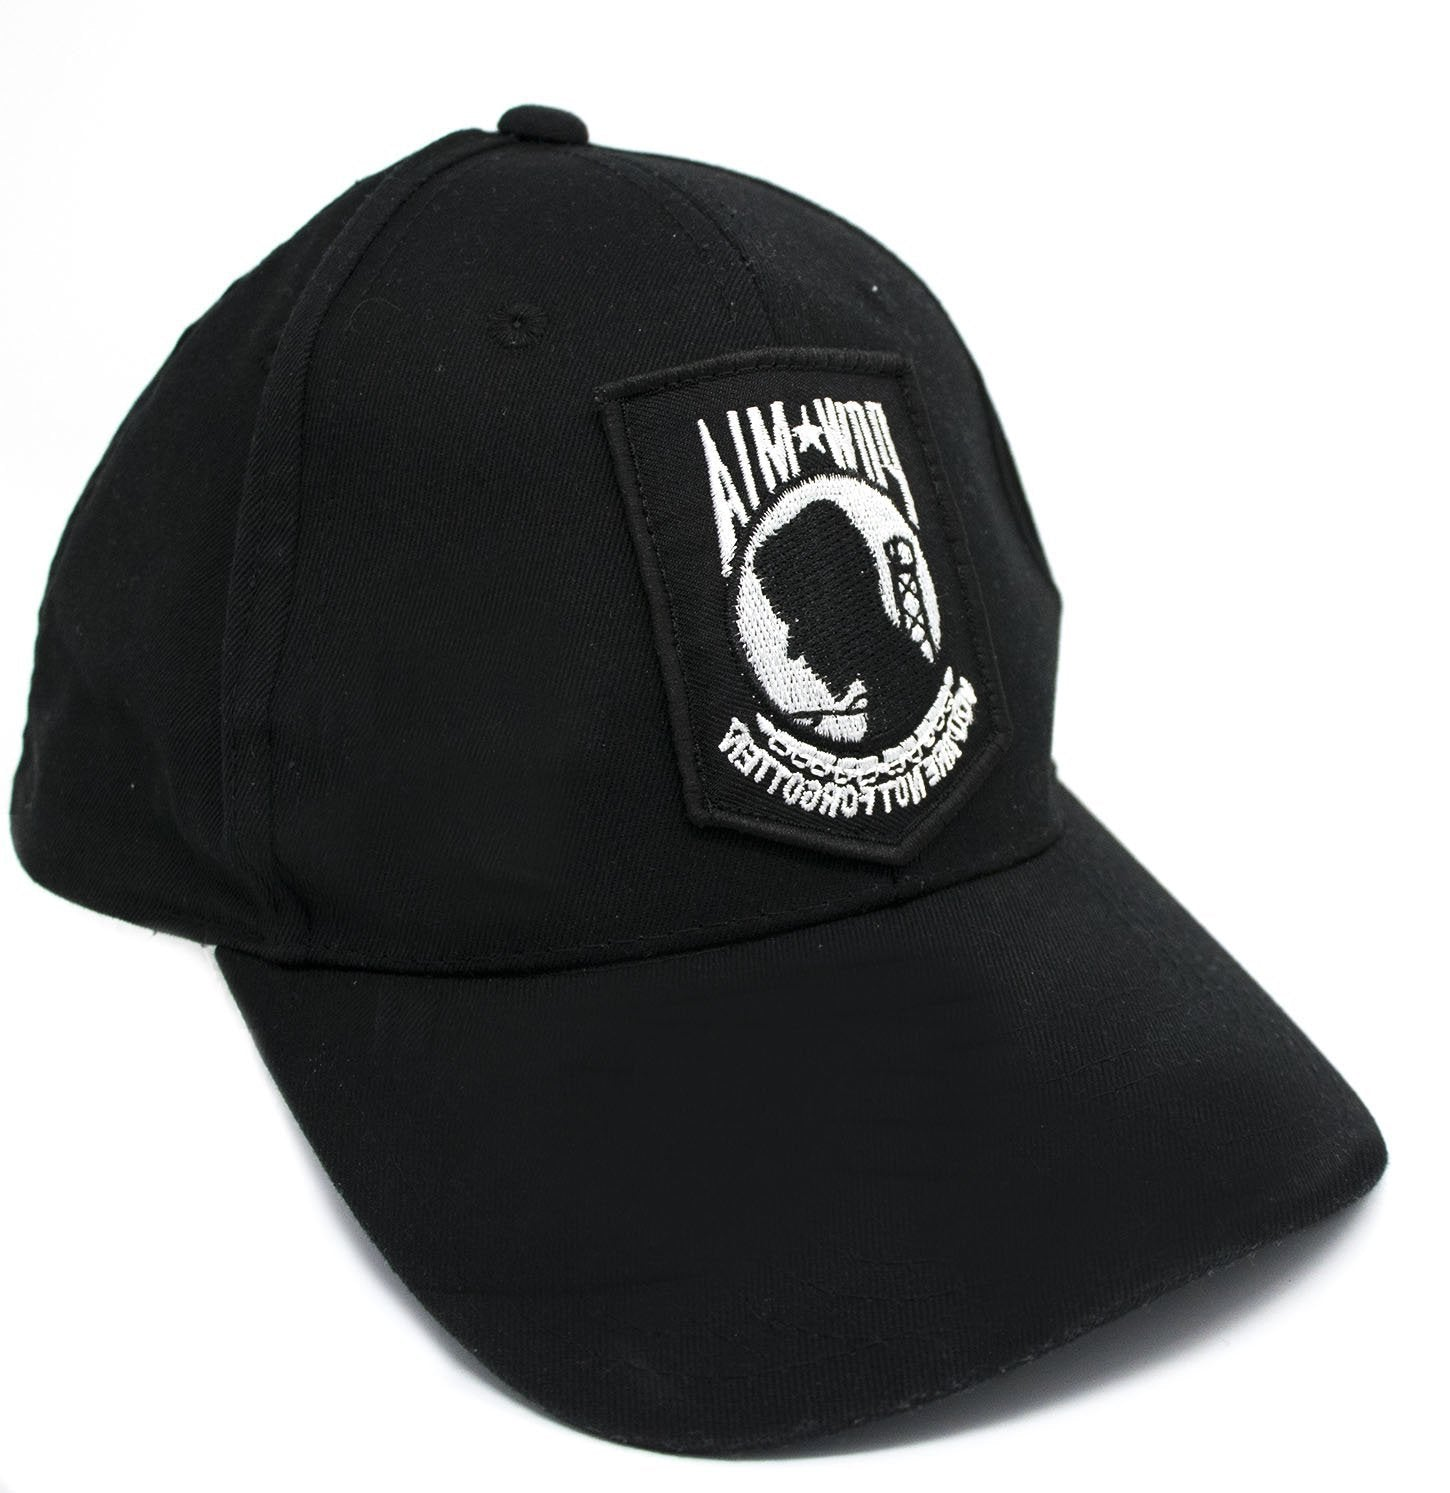 POW MIA Hat w/BONUS#1 3 Ft. X 5 Ft. POW-MIA Flag BONUS#2 POW-MIA Embroidered Patch - POW MIA Emblem Mint